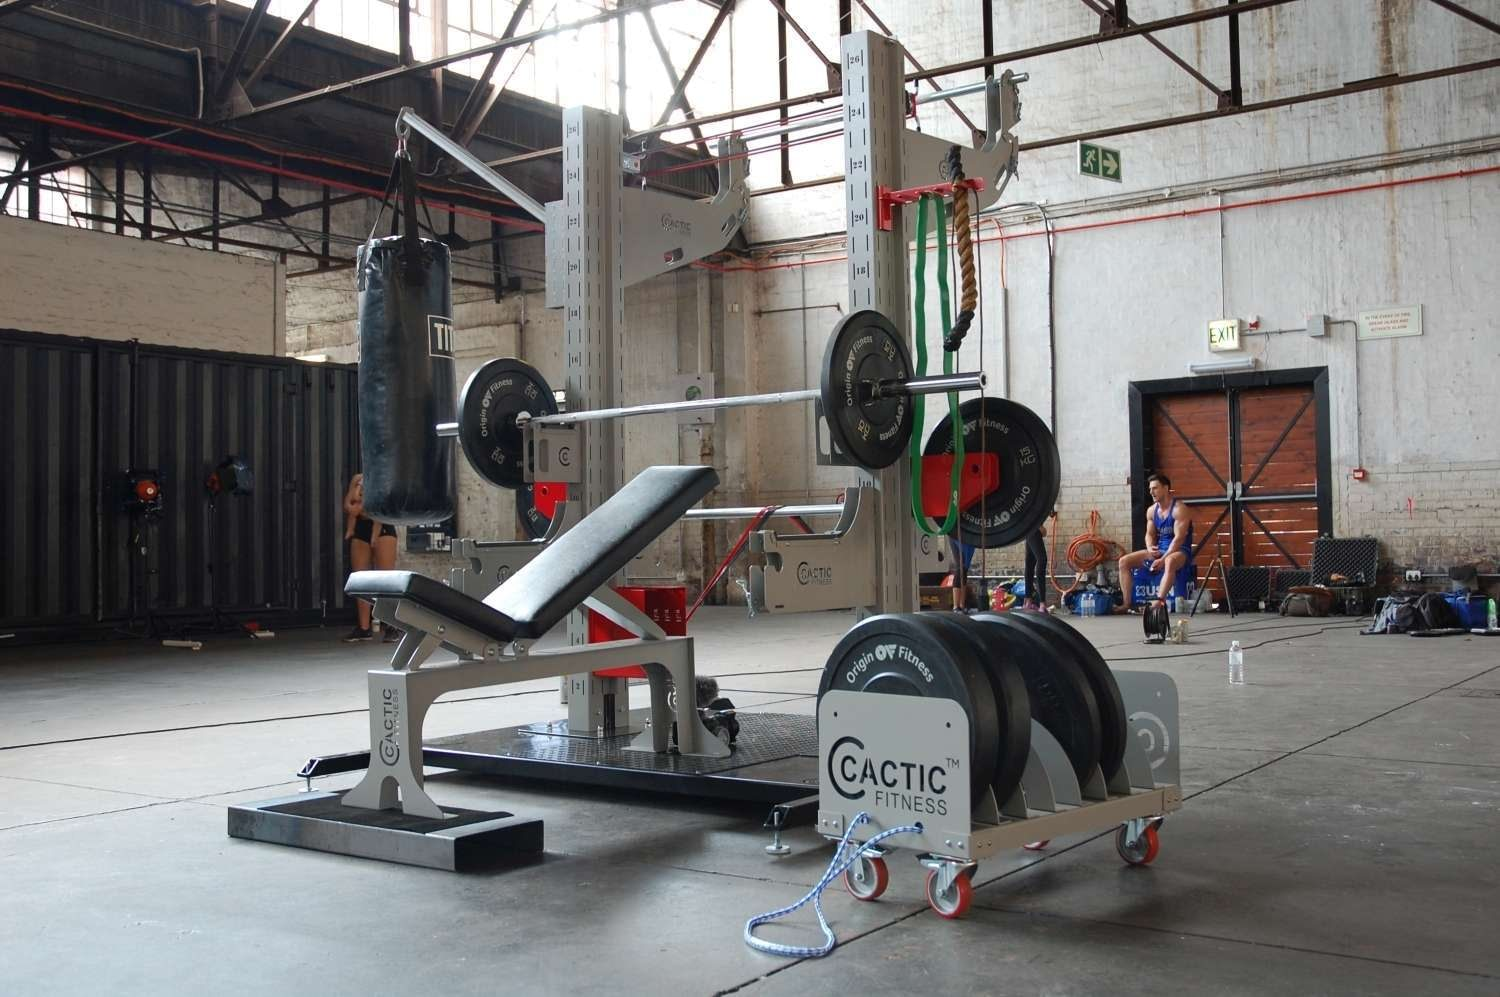 Multi Sport Express F1 2 Cactic Fitness